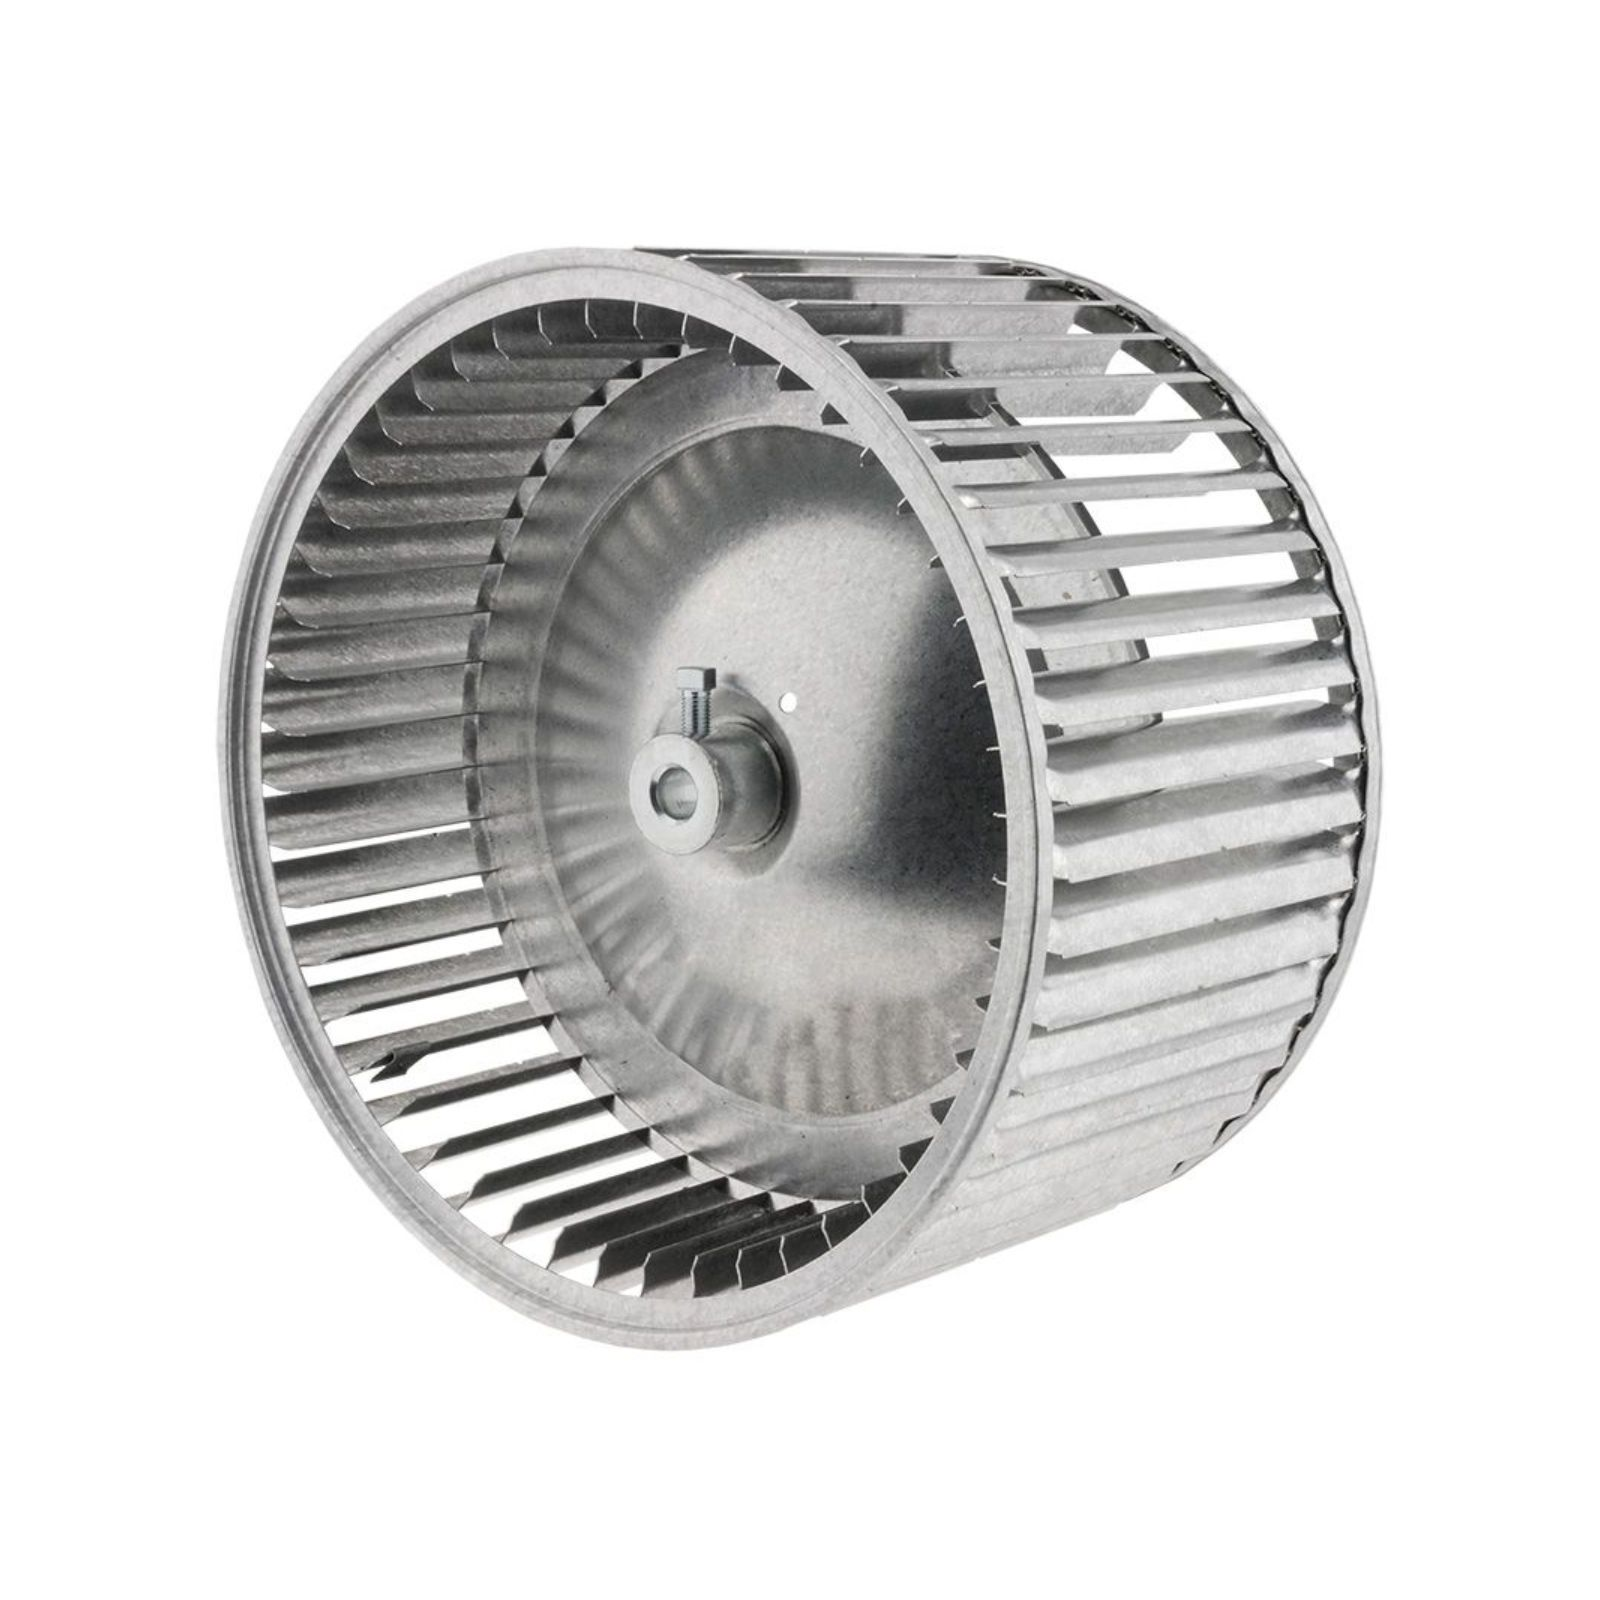 "PROTECH 703022 - Blower Wheel, 10"" x 6"", CW"